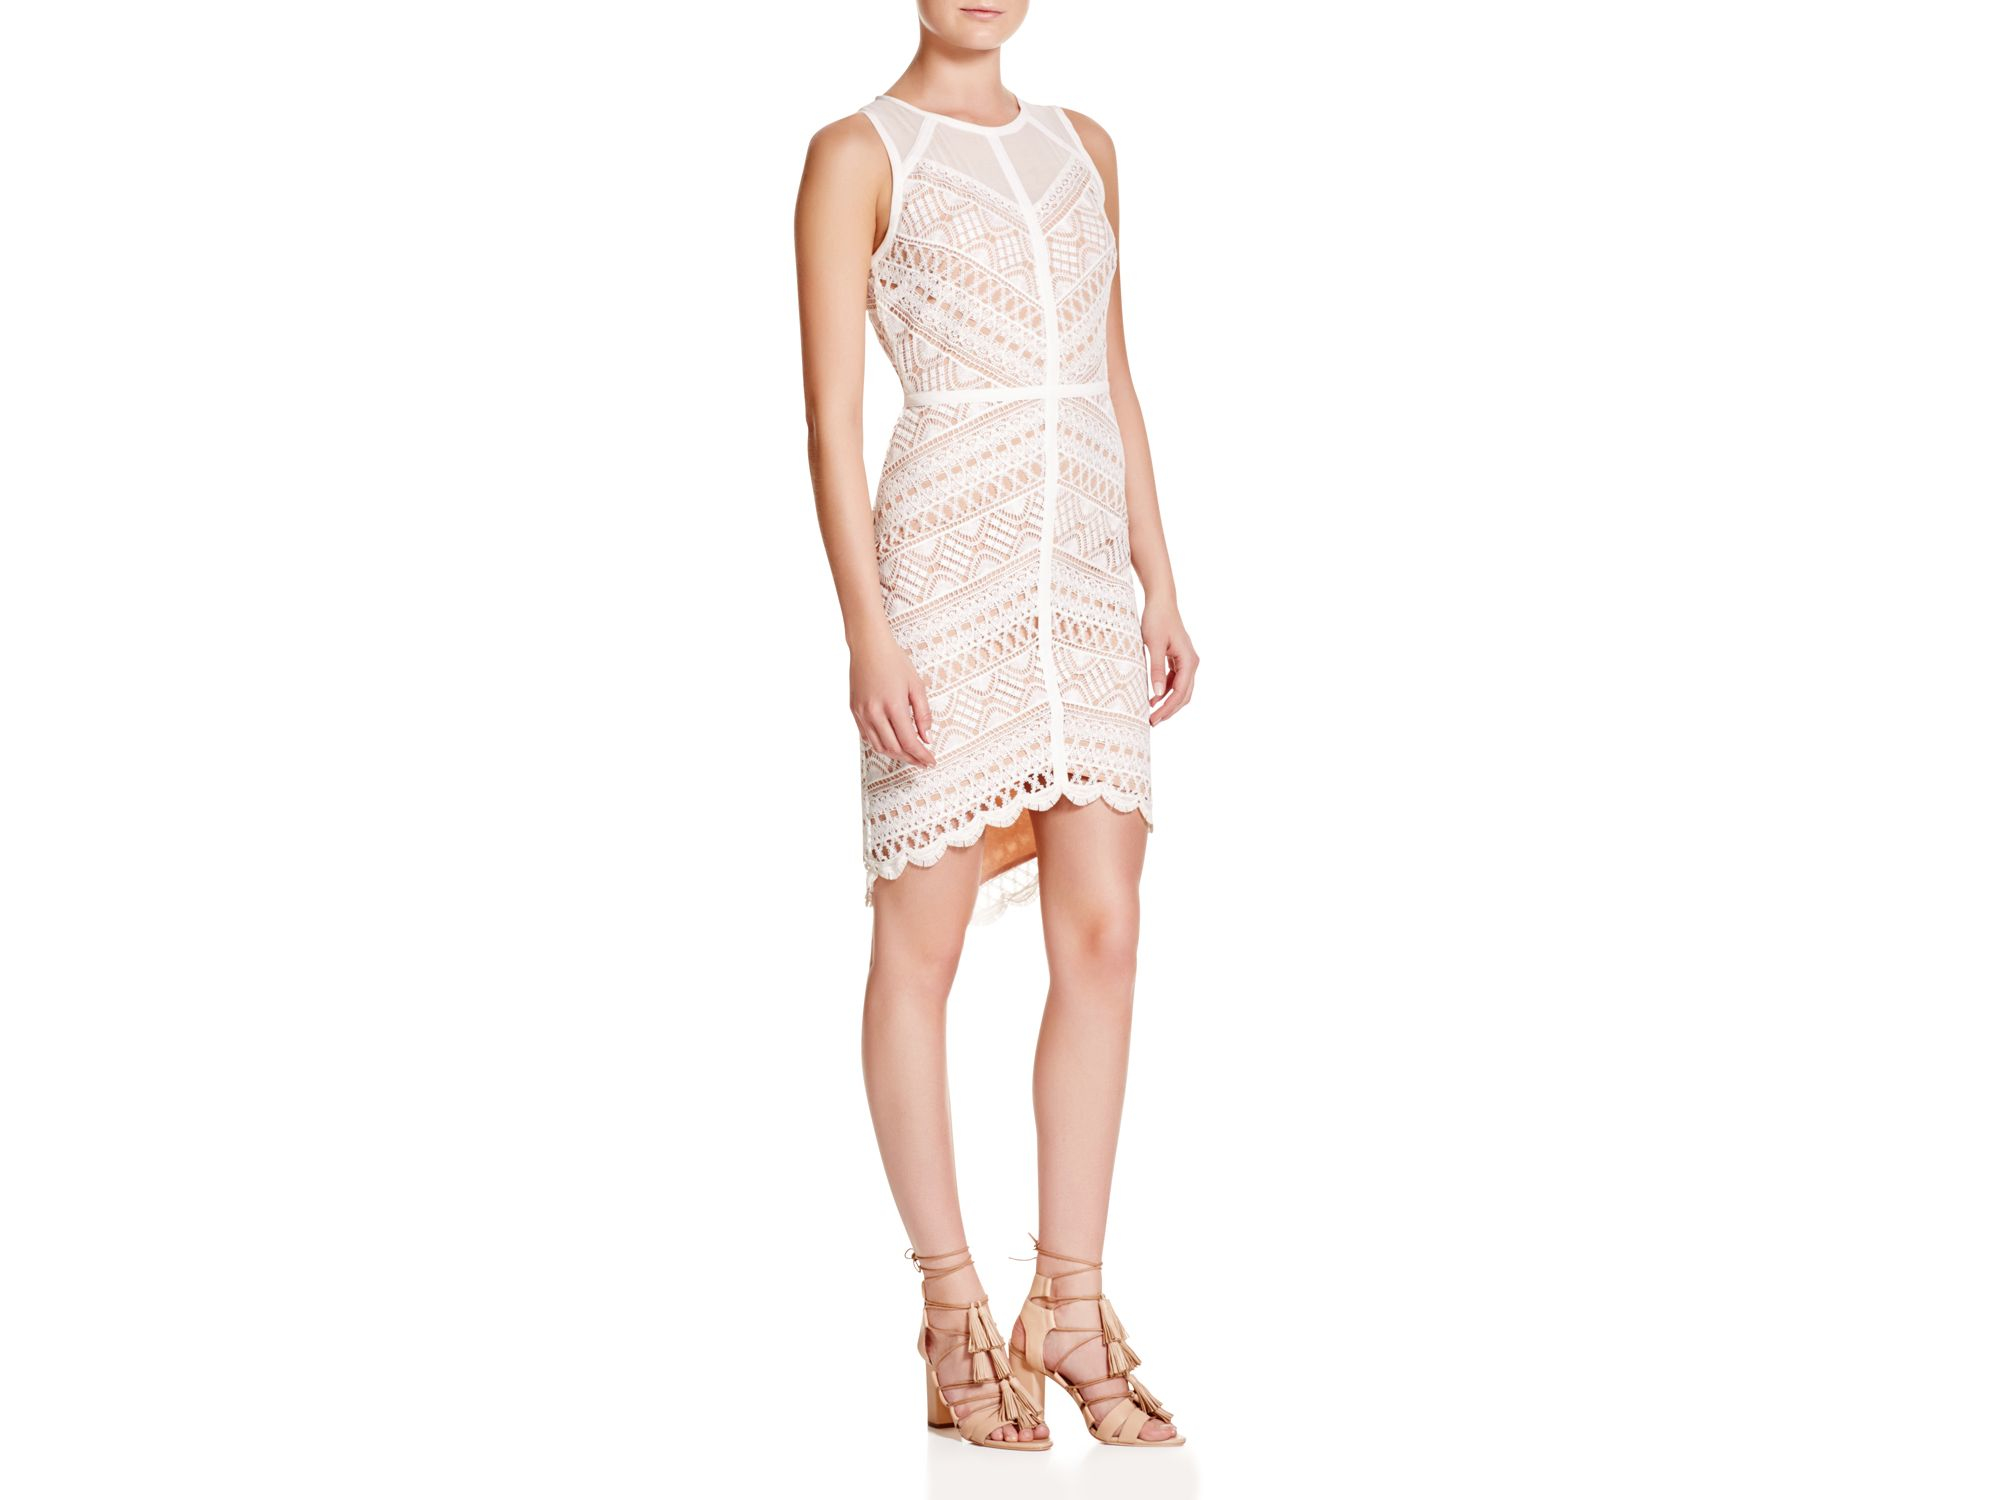 Lyst - Adelyn Rae Lace Dress in Pink c1d76ffdbf